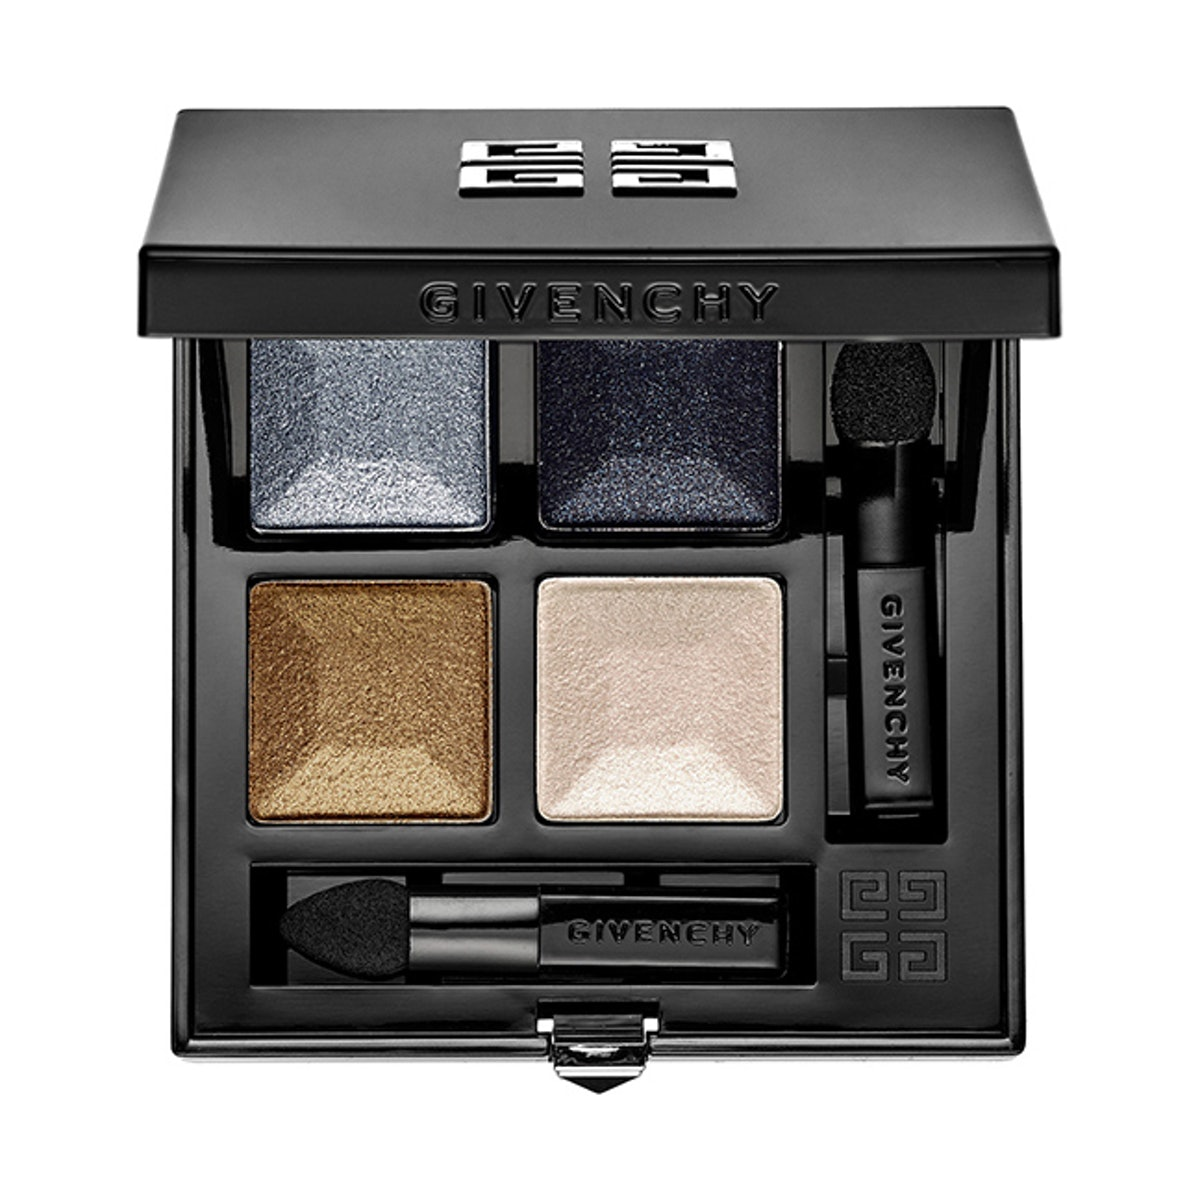 Givenchy Prisme Quatuor in Impertinence